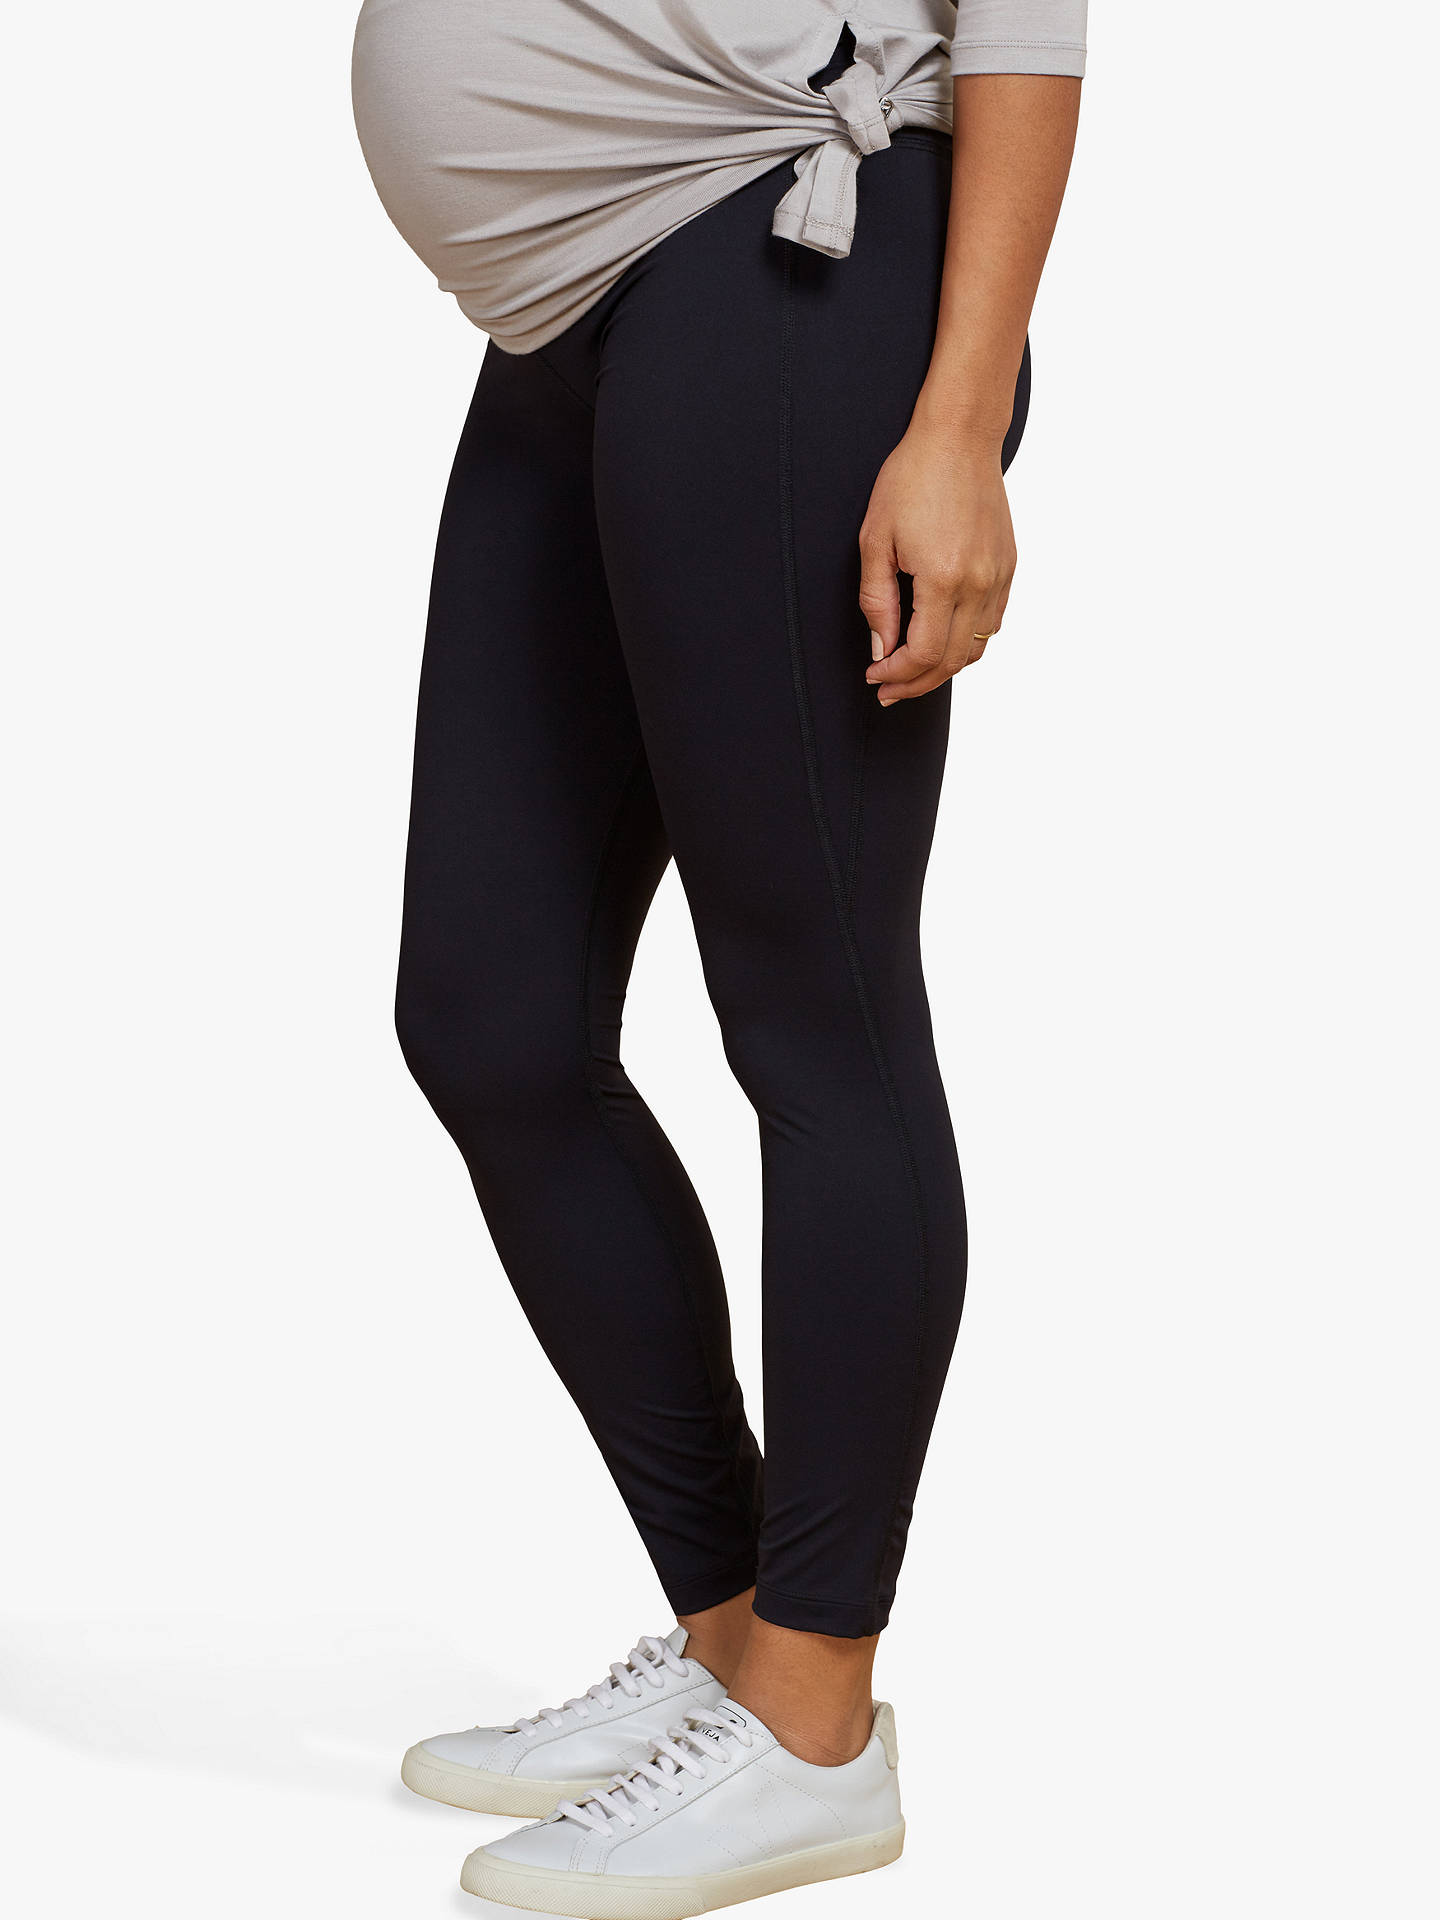 Buy Isabella Oliver Active Maternity Leggings, Black, 8 Online at johnlewis.com